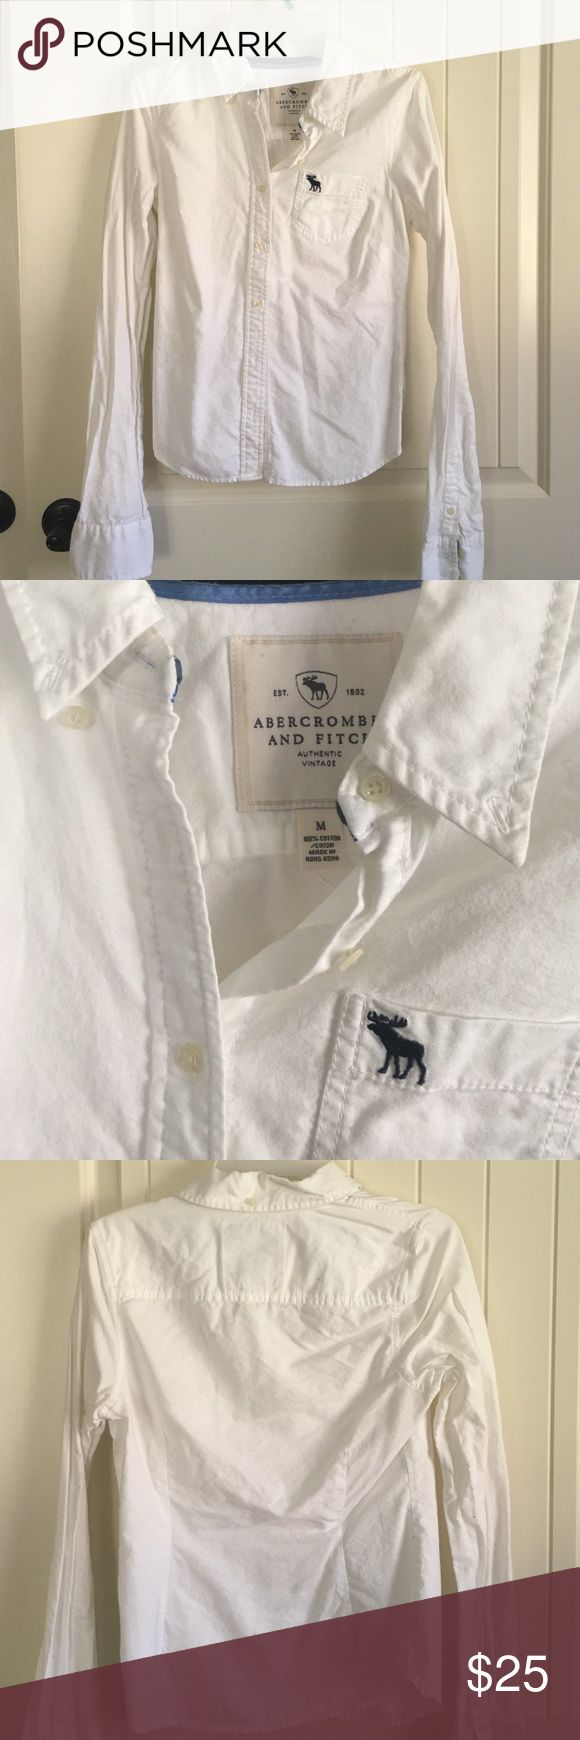 Abercrombie and Fitch white button up So pretty under sweaters or layered with scarf Abercrombie & Fitch Tops Button Down Shirts